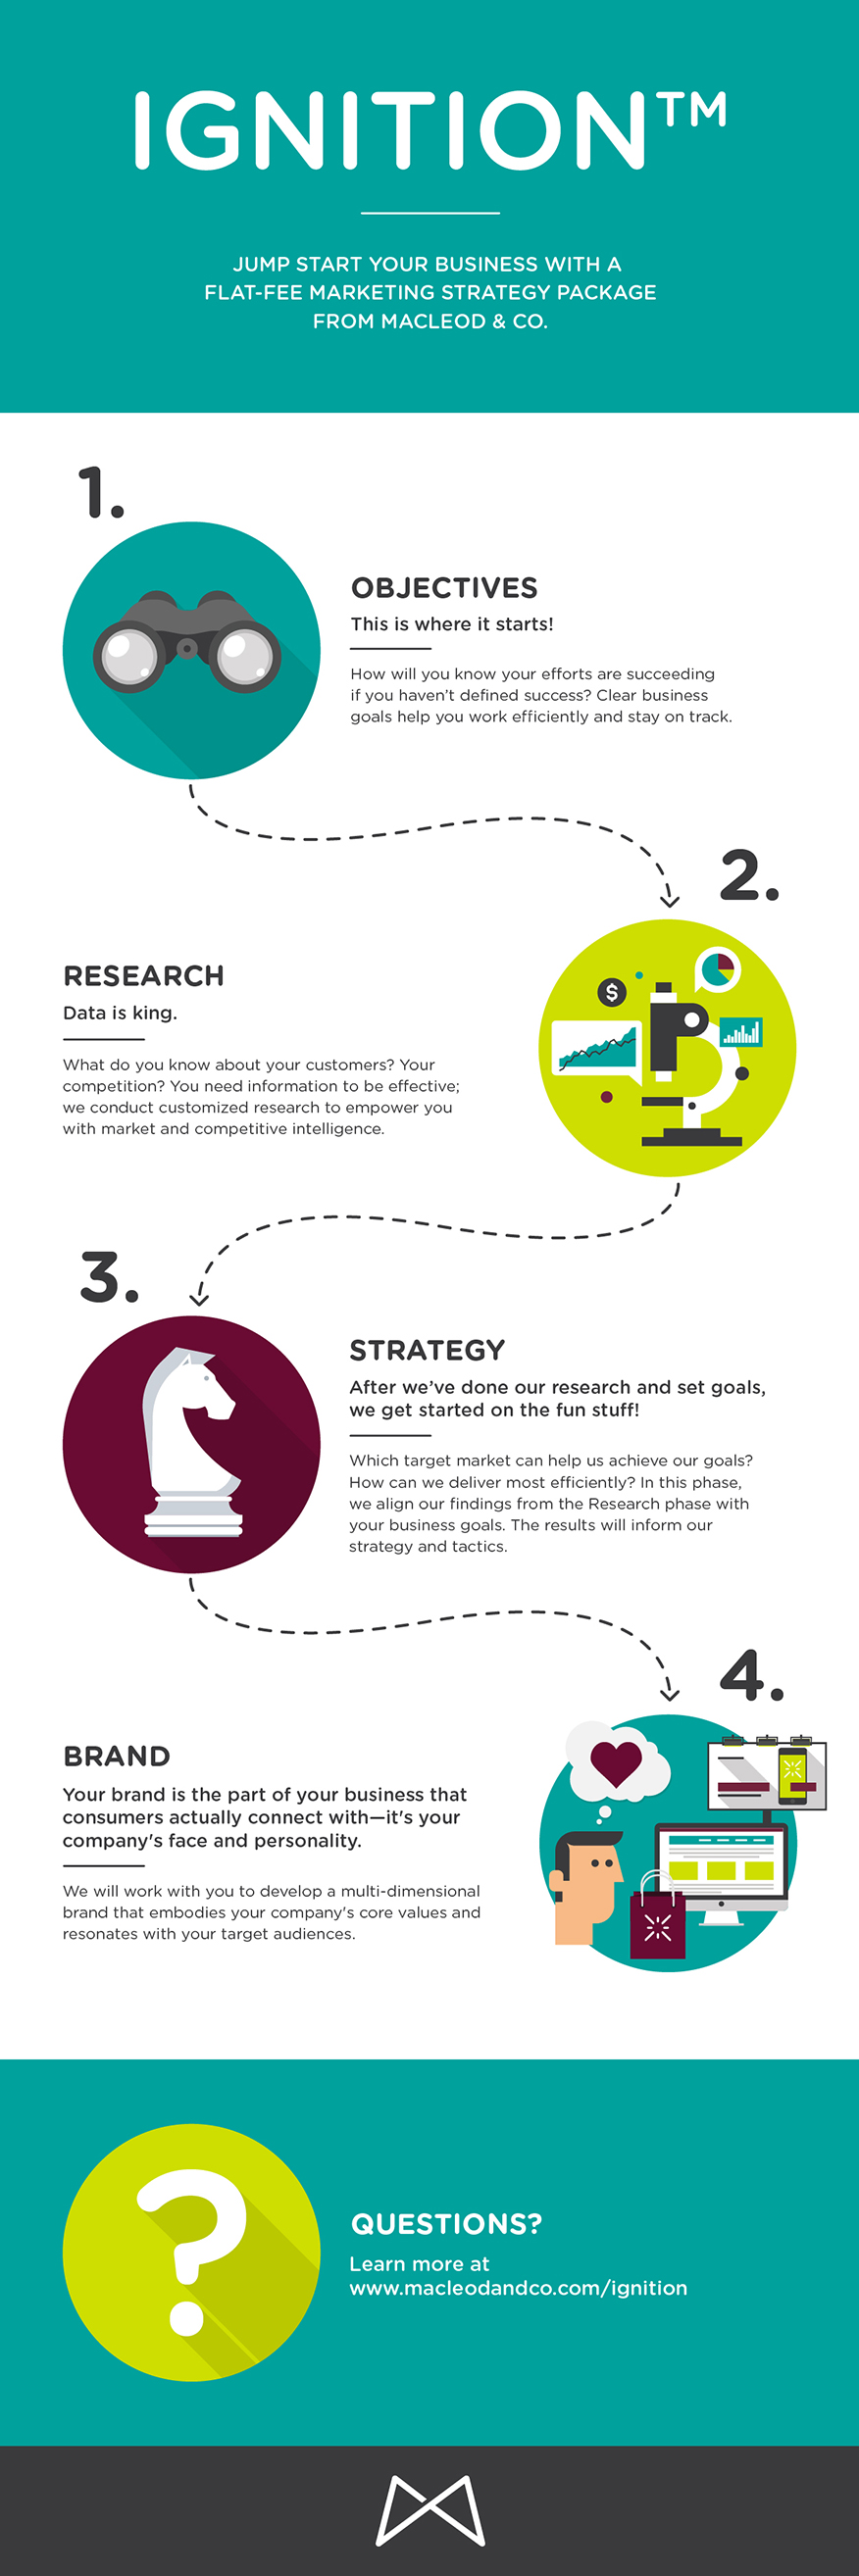 Marketing Strategy Infographic | Ignition from Macleod & Co. The Holistic Marketing Agency Minneapolis